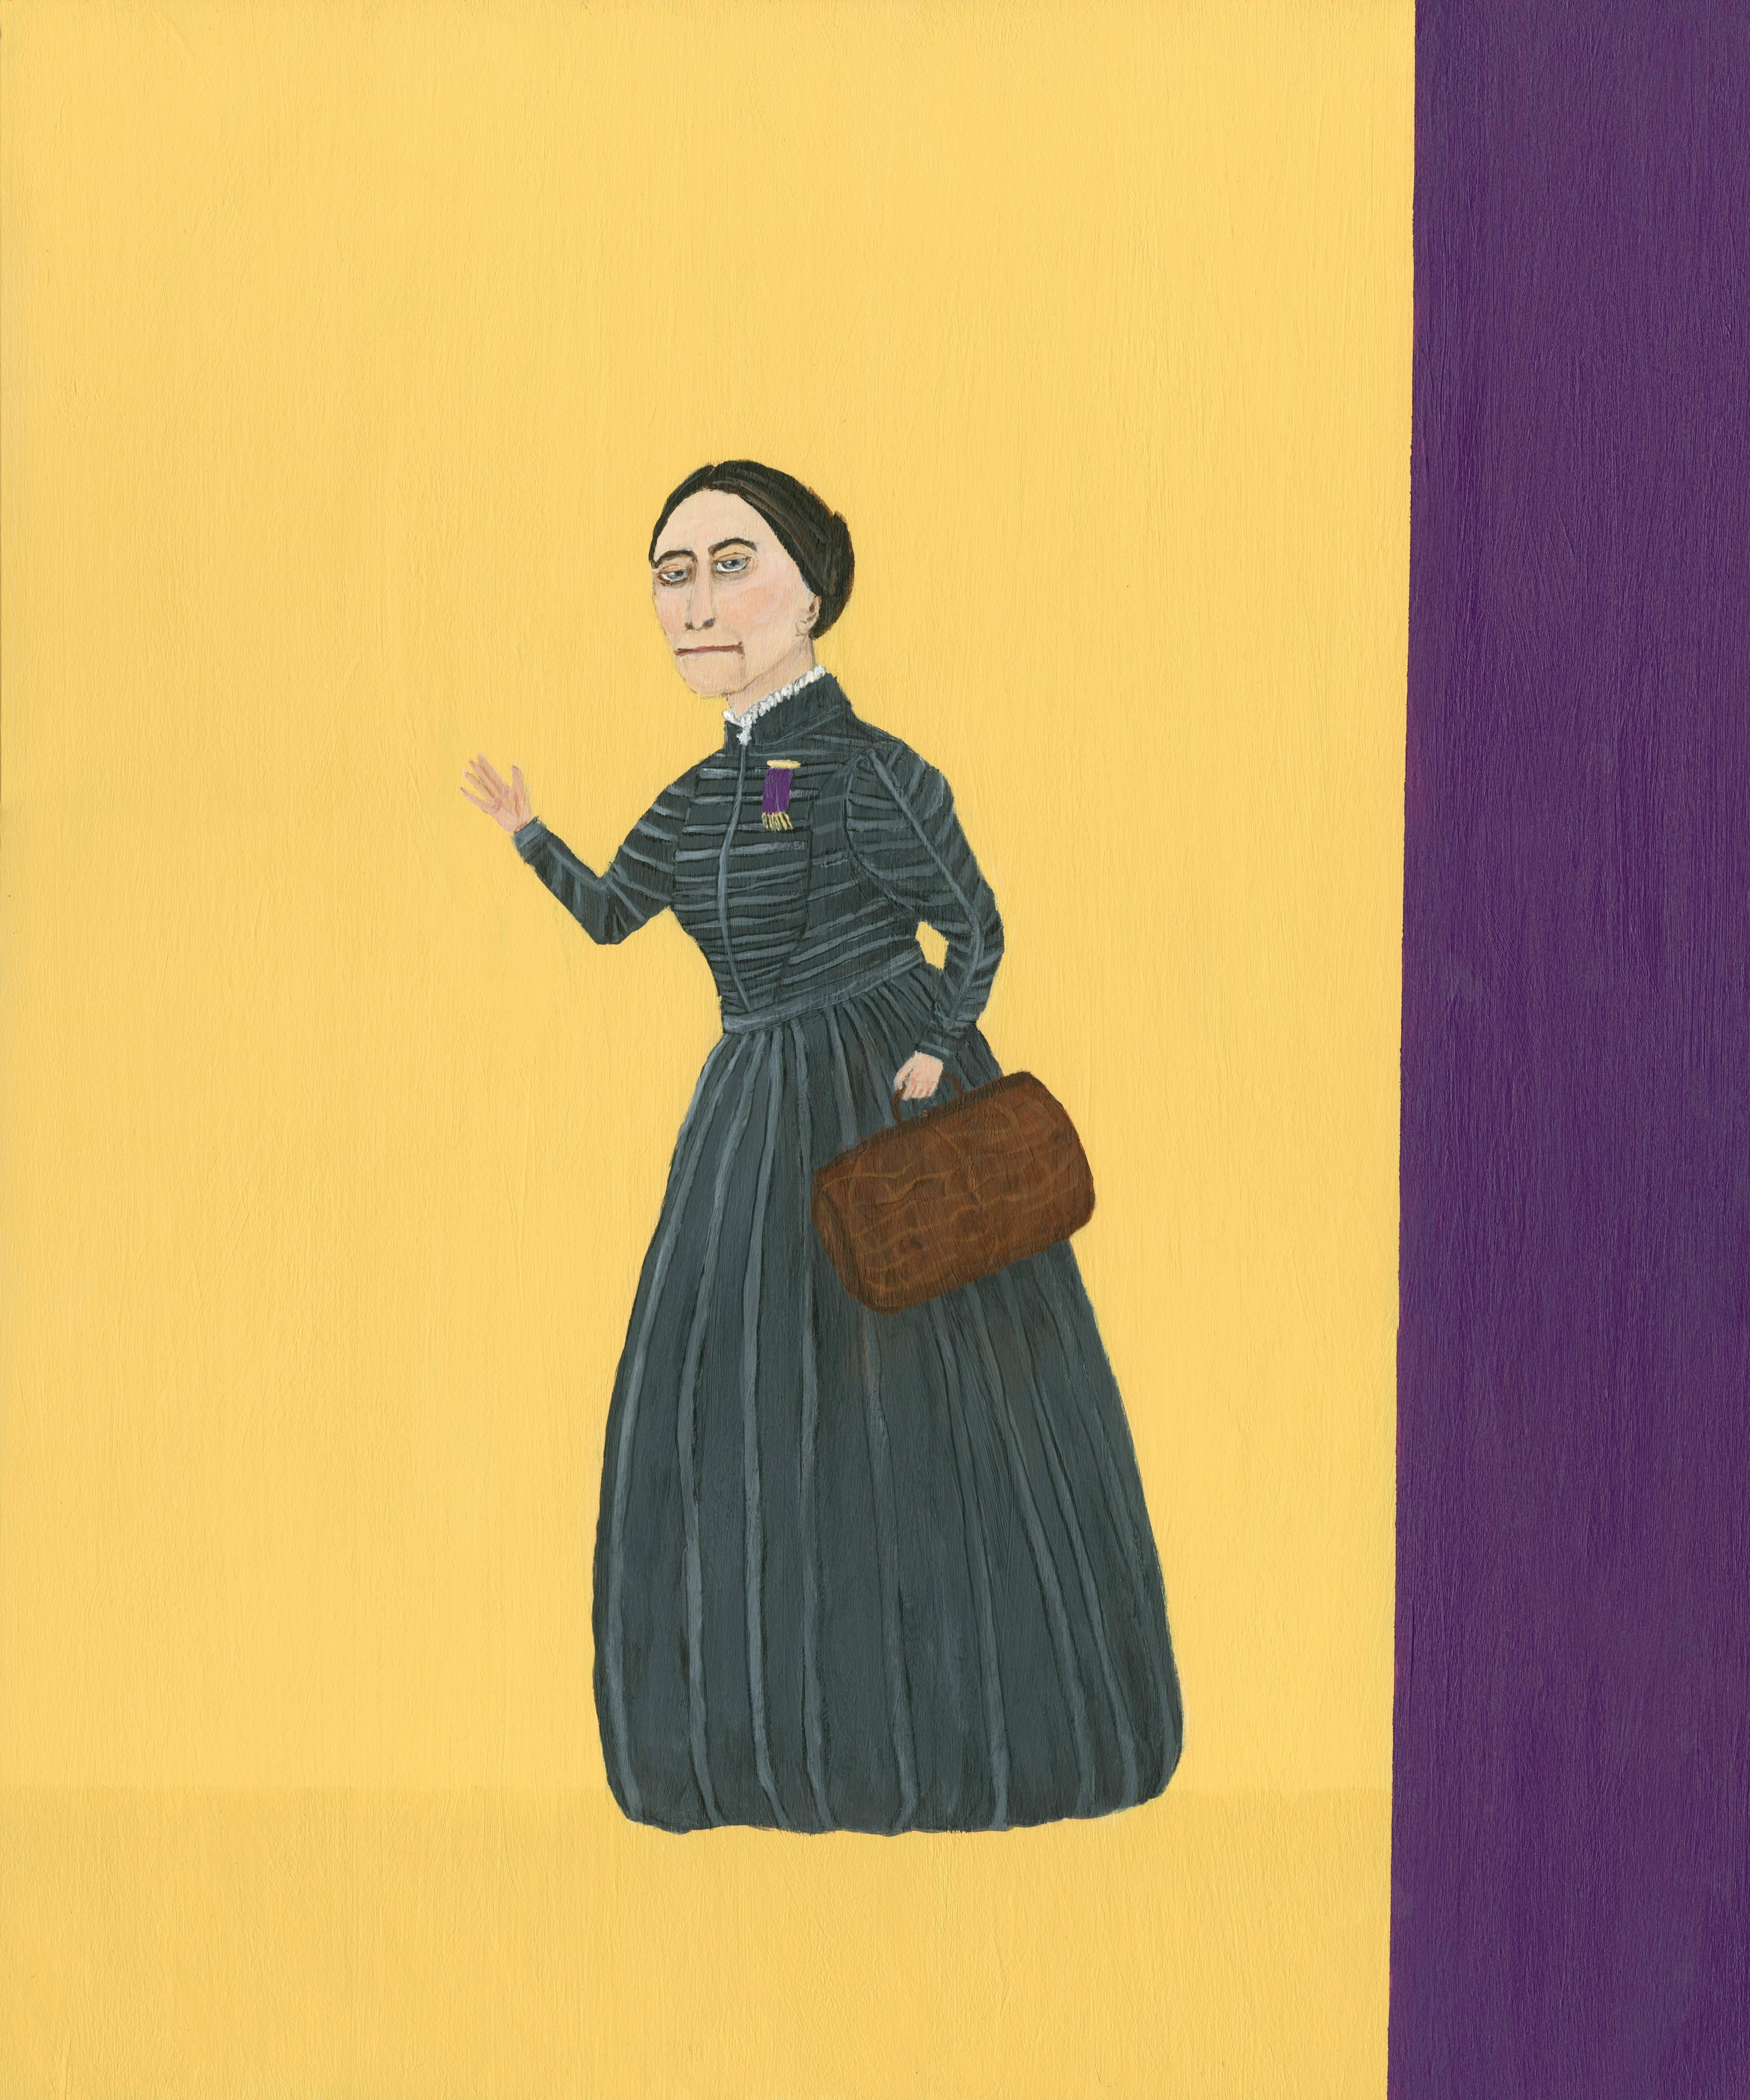 Mary Dwyer, Susan B. Anthony On the Road Again, 2014, Arcylic Paint, Wood Panel